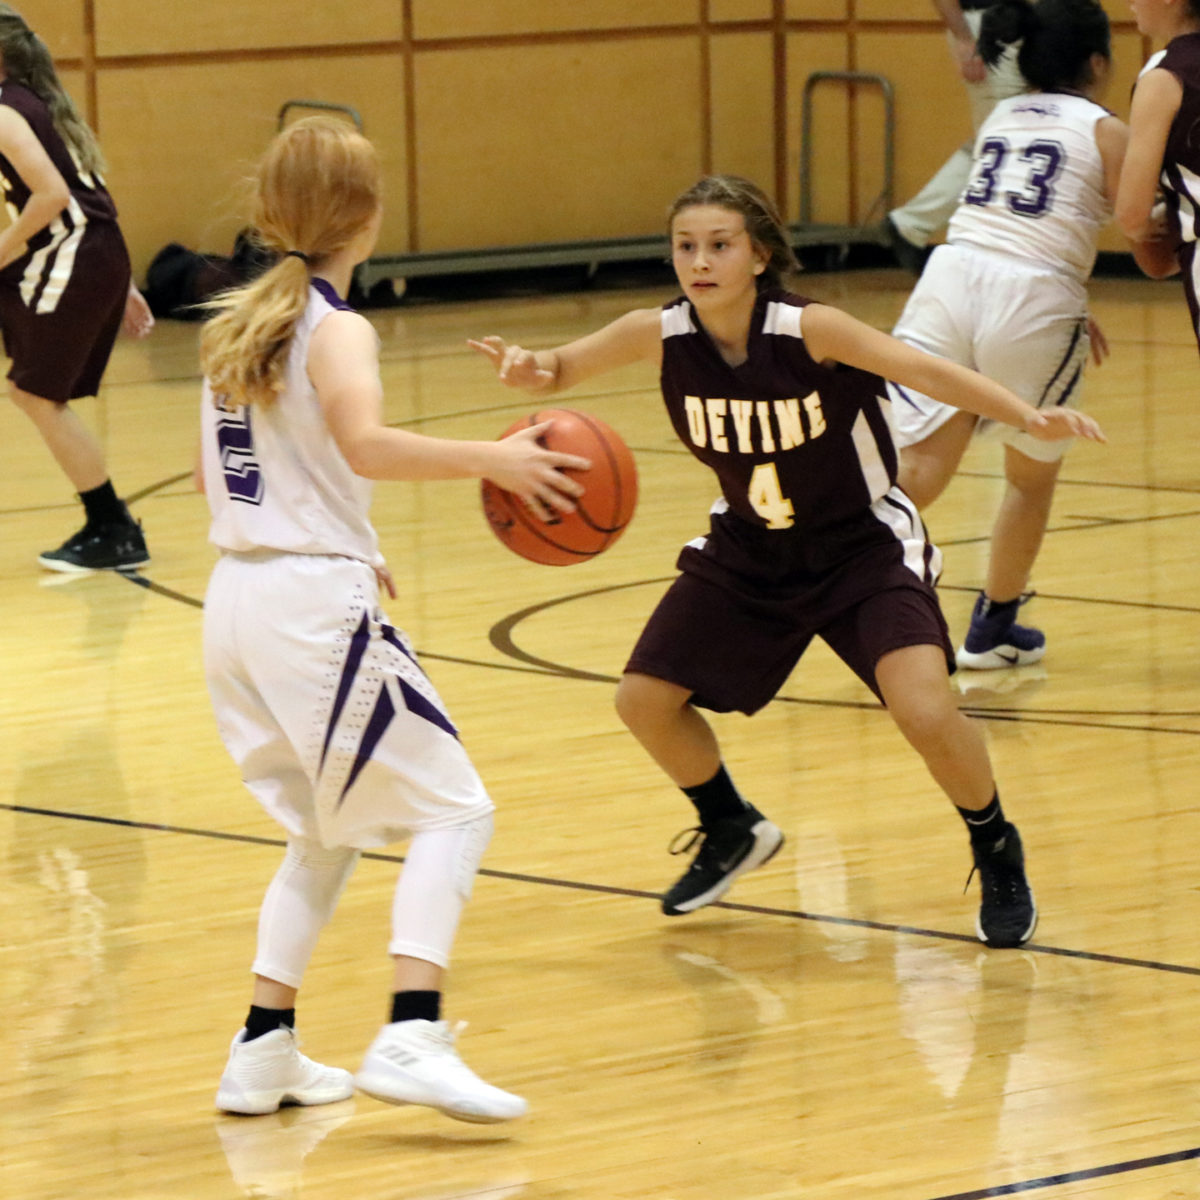 Freshmen Arabians lose season opener to Boerne